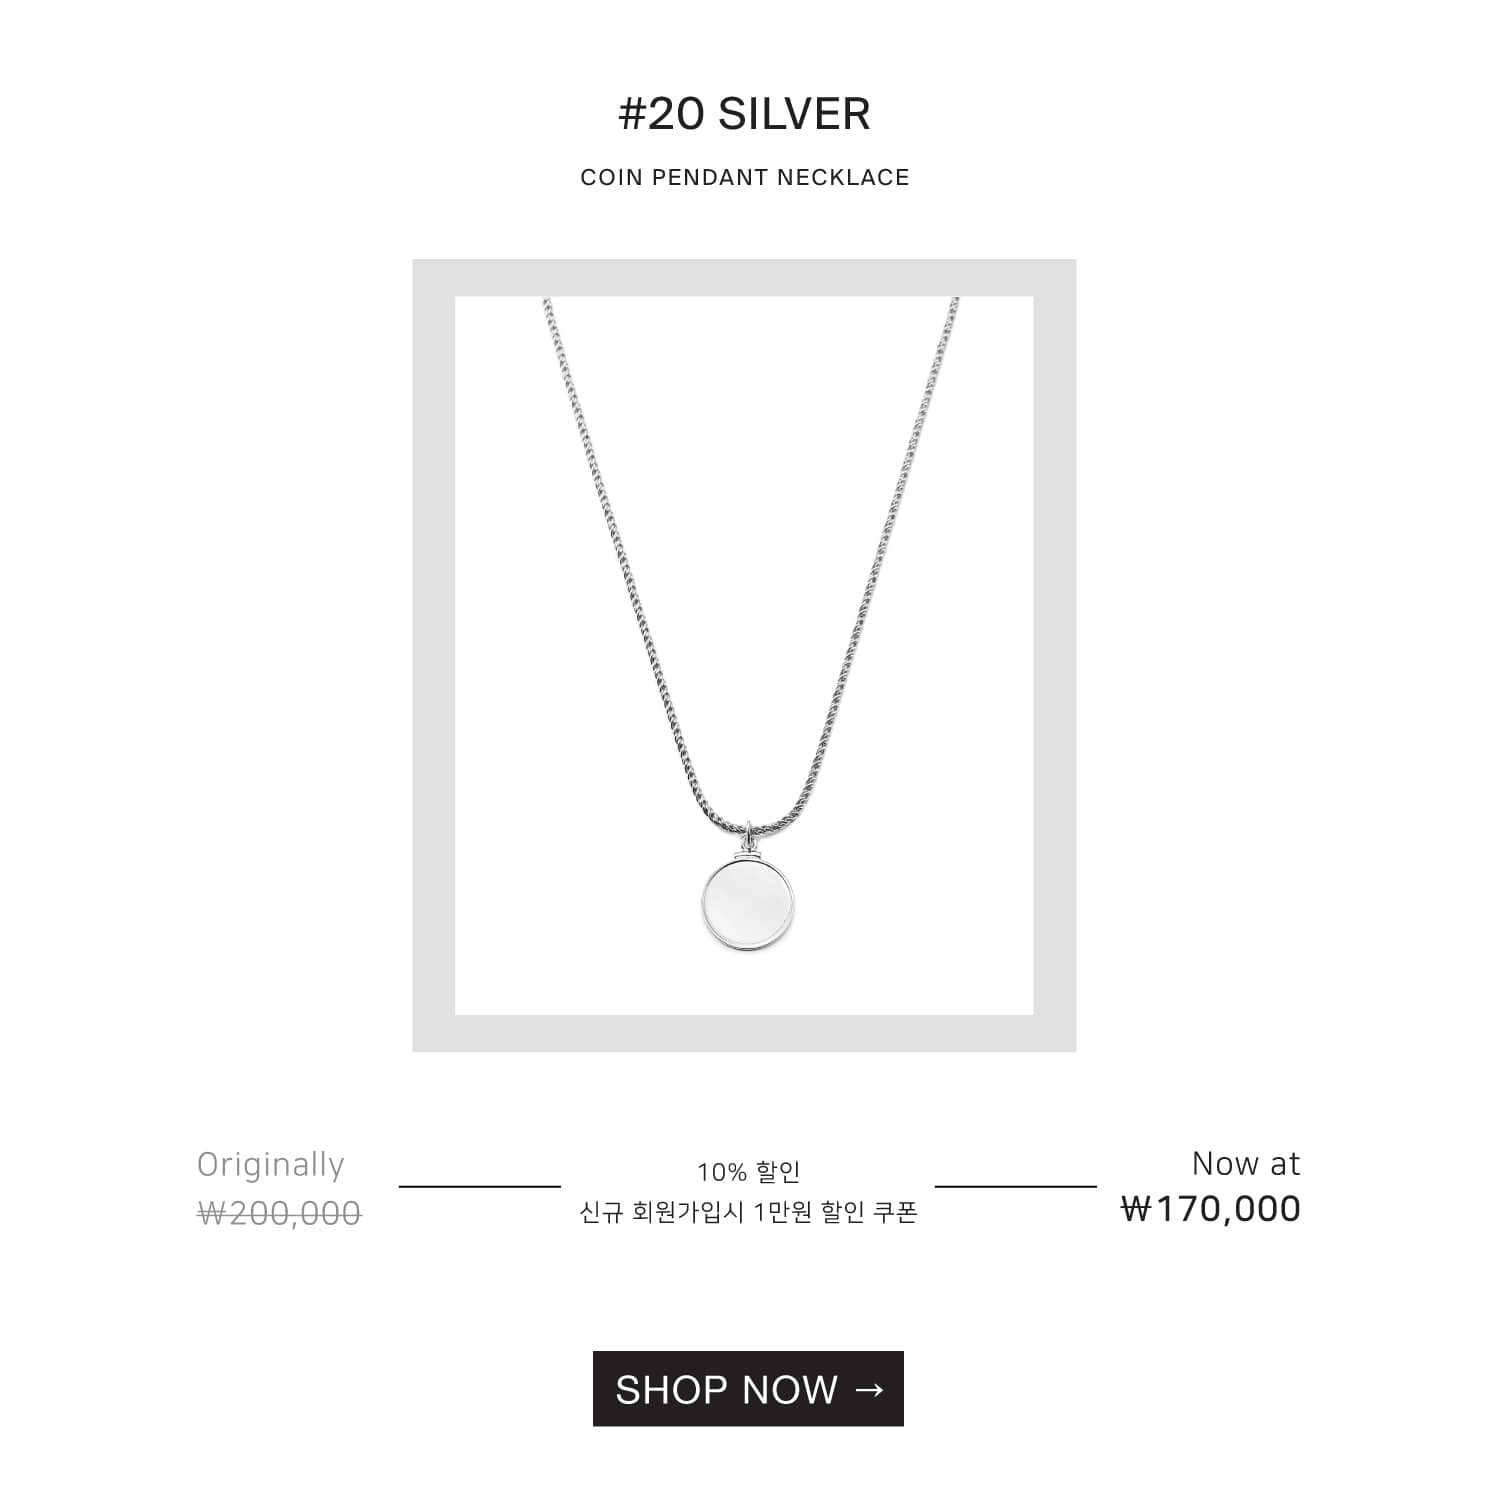 NMBR Signature Look SALE 20 silver